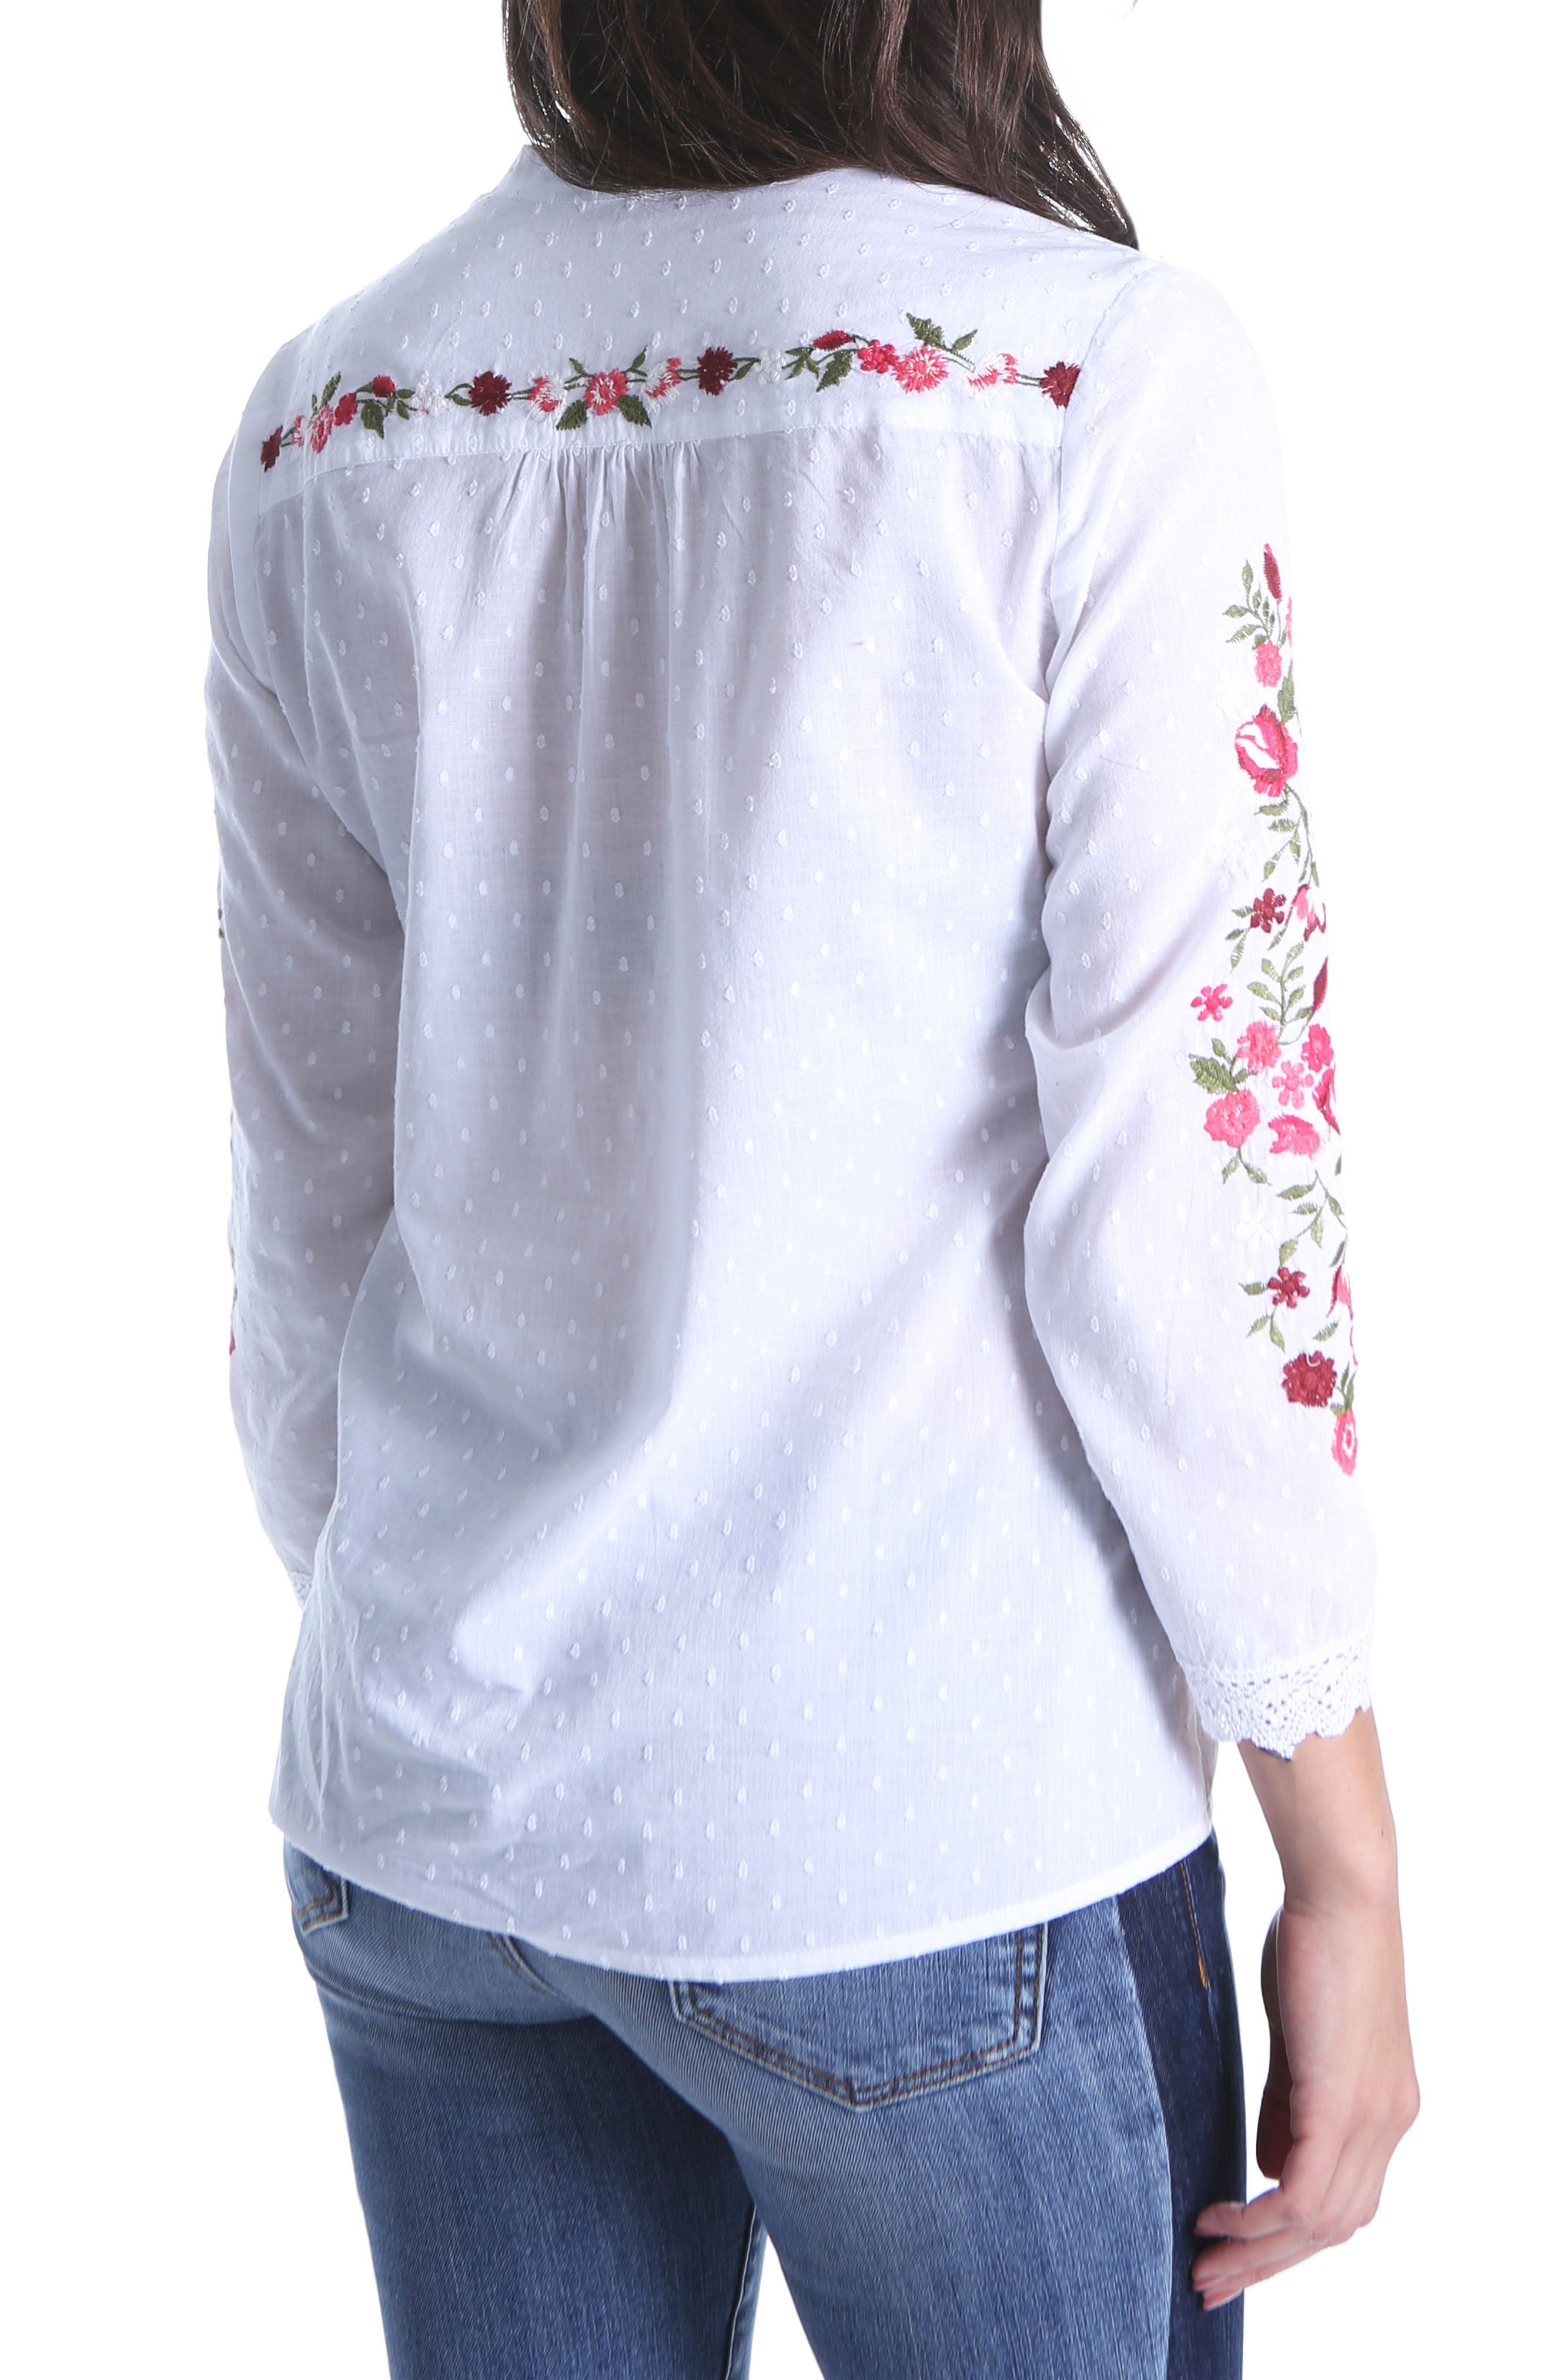 Kat Embroidered Lace Detail Blouse,                             Alternate thumbnail 2, color,                             White